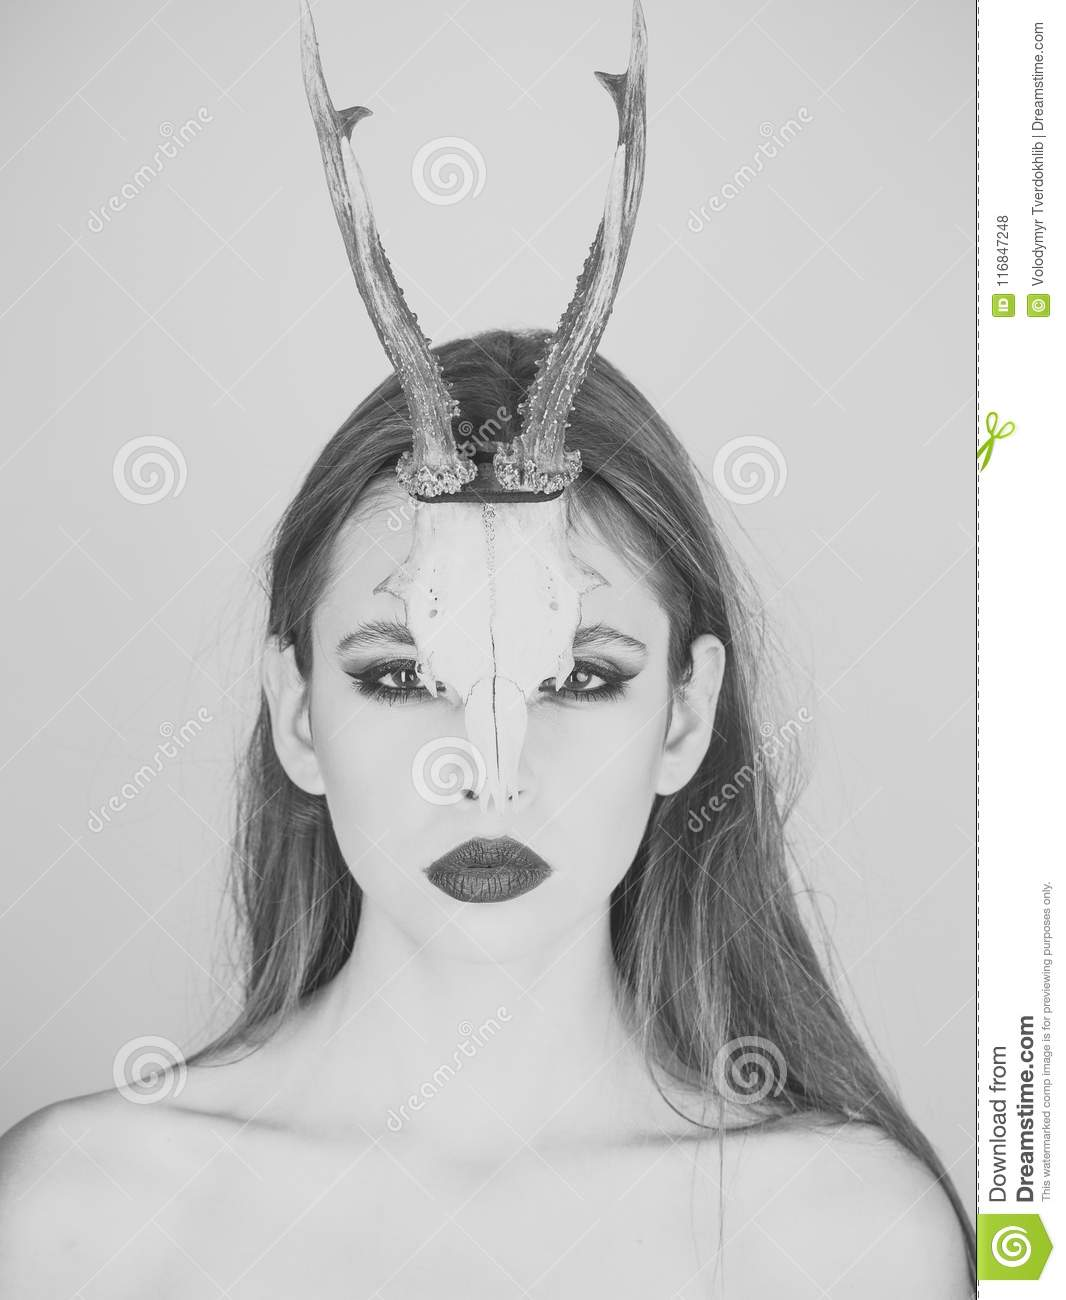 Fashion devil of mystic shaman girl with horns. Woman with makeup and antlers. Beauty look and cosmetics for skincare